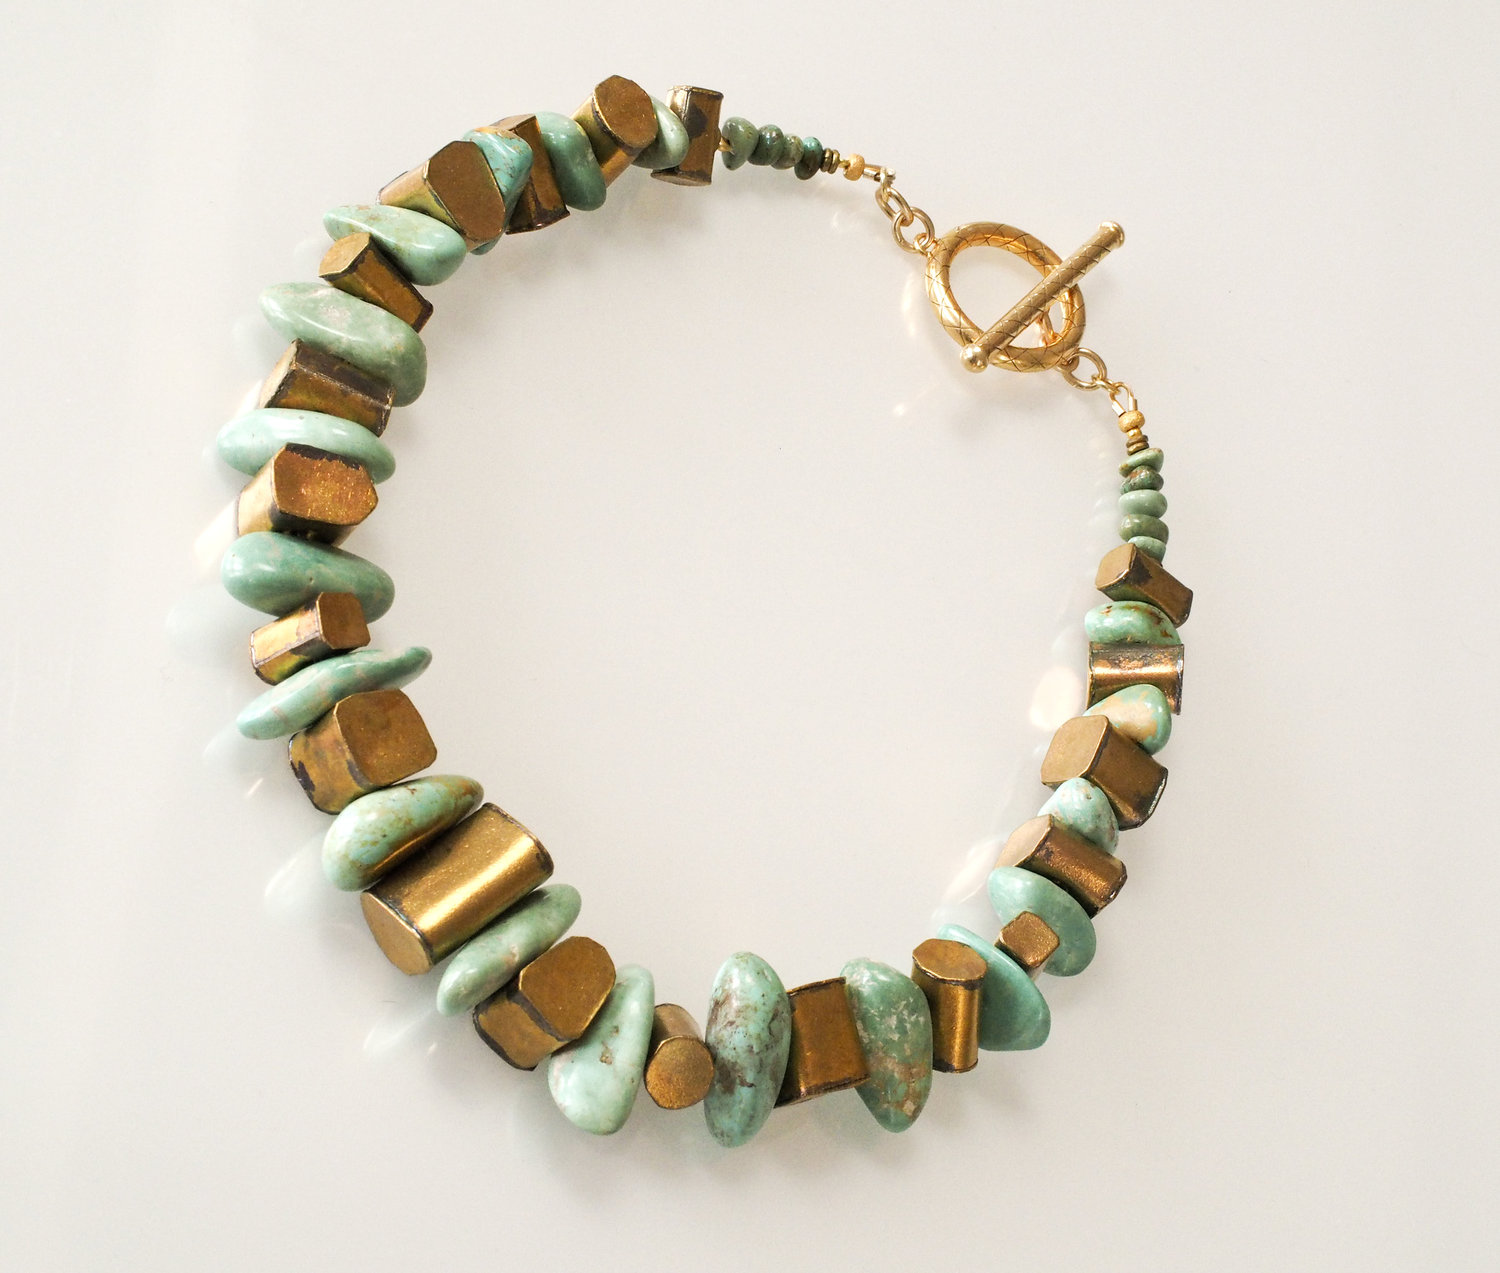 Brass geometric shapes alternating with Turkish turquoise chunks, closed with stunning 24K vermeil toggle clasp. Length 18 inches.  Materials: Turkish turquoise, 24K vermeil, brass  ID #1718103